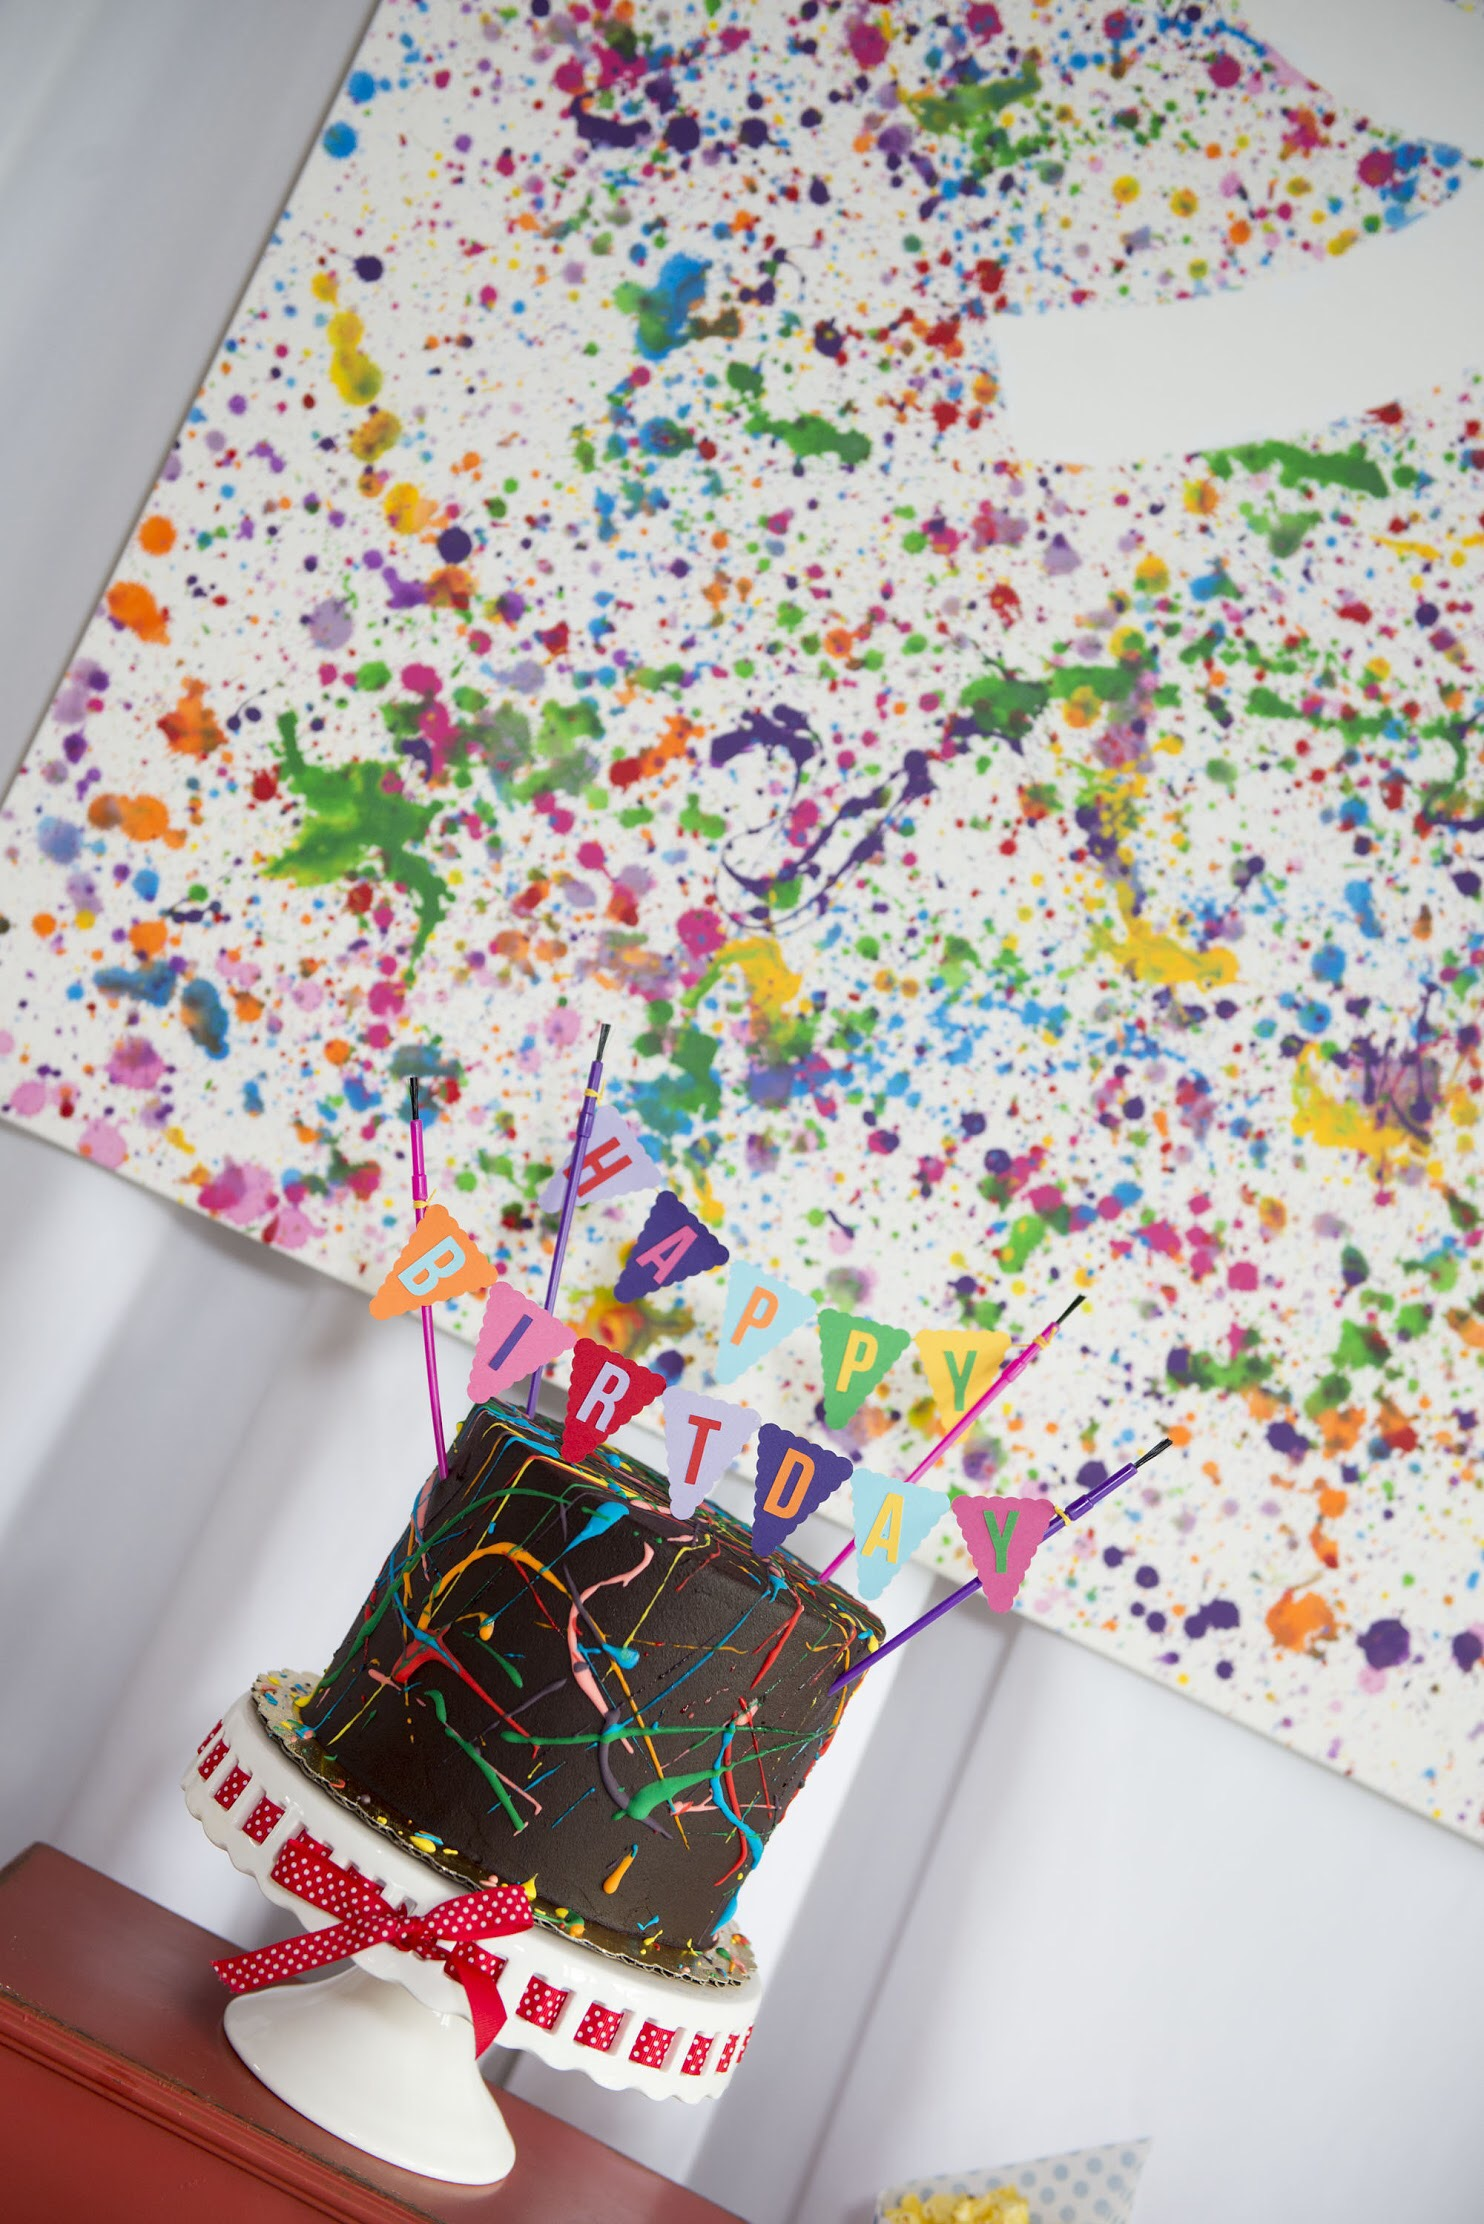 Think outside the box with your art party birthday cake - here's a chocolate brownie cake instead of a traditional white birthday cake. See all the details on how to plan your art party at a local art studio on Mint Event Design www.minteventdesign.com #kidsparty #kidspartyideas #birthdaypartyideas #artparty #rainbowparty #birthdaycake #partydessert